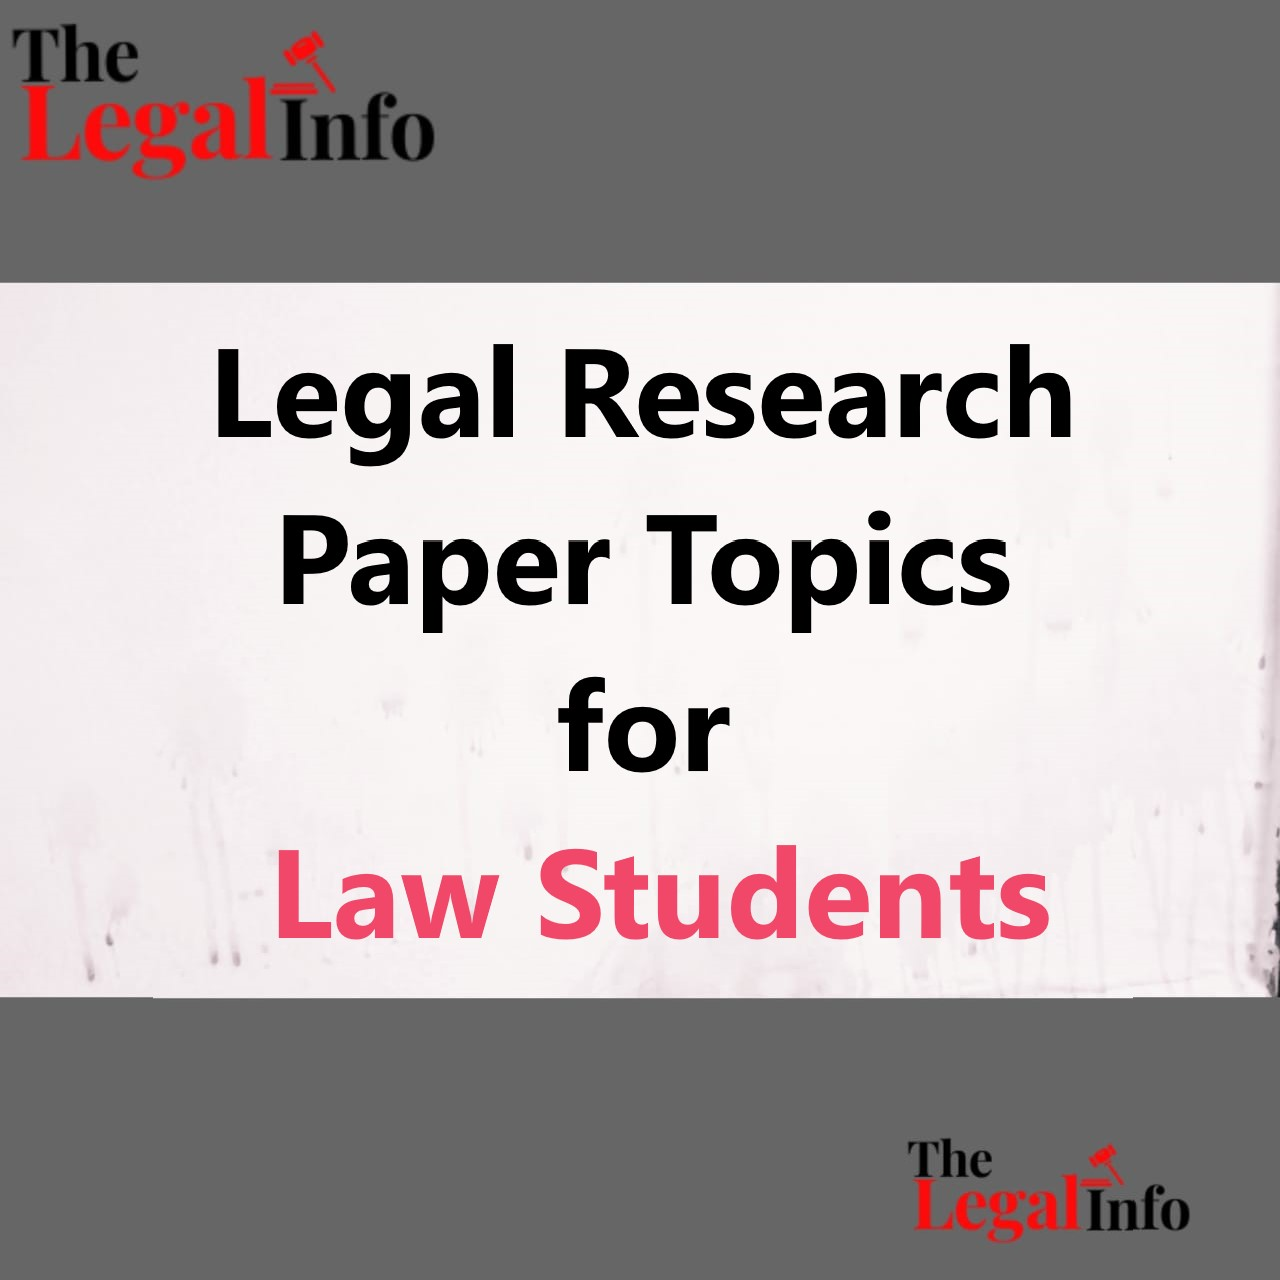 Legal topics for research papers jdownloader download incomplete auto resume